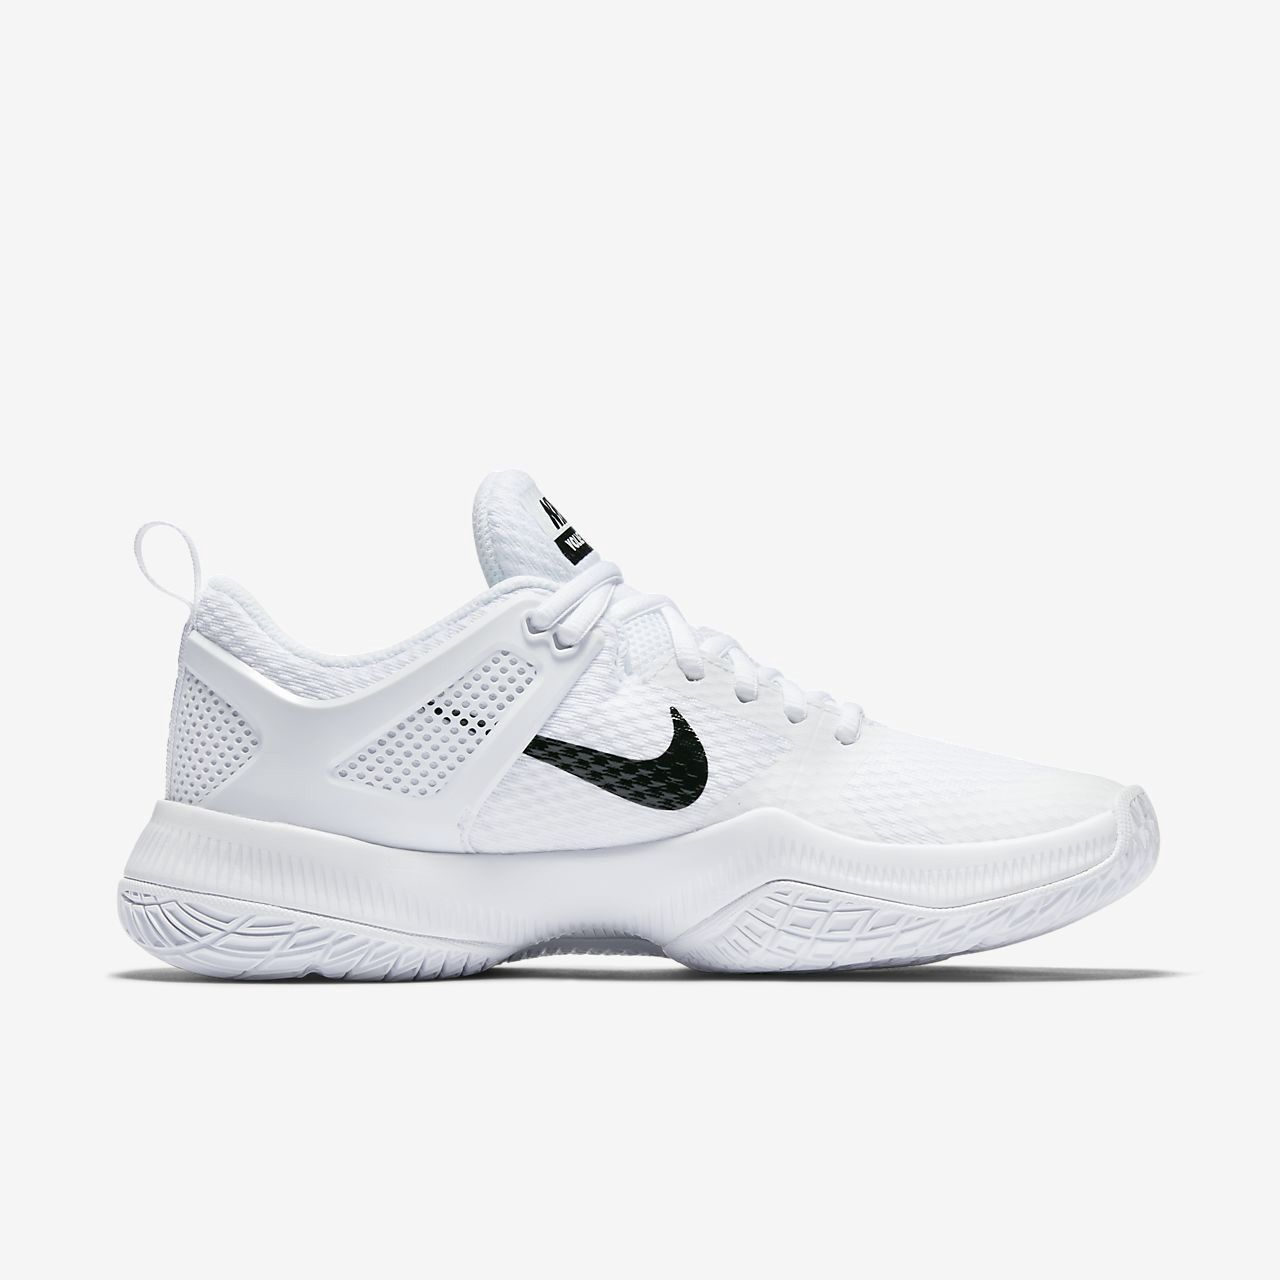 94d8184ccf45 Nike Air Zoom Hyperace Women s Volleyball Shoe - 5 in 2019 ...